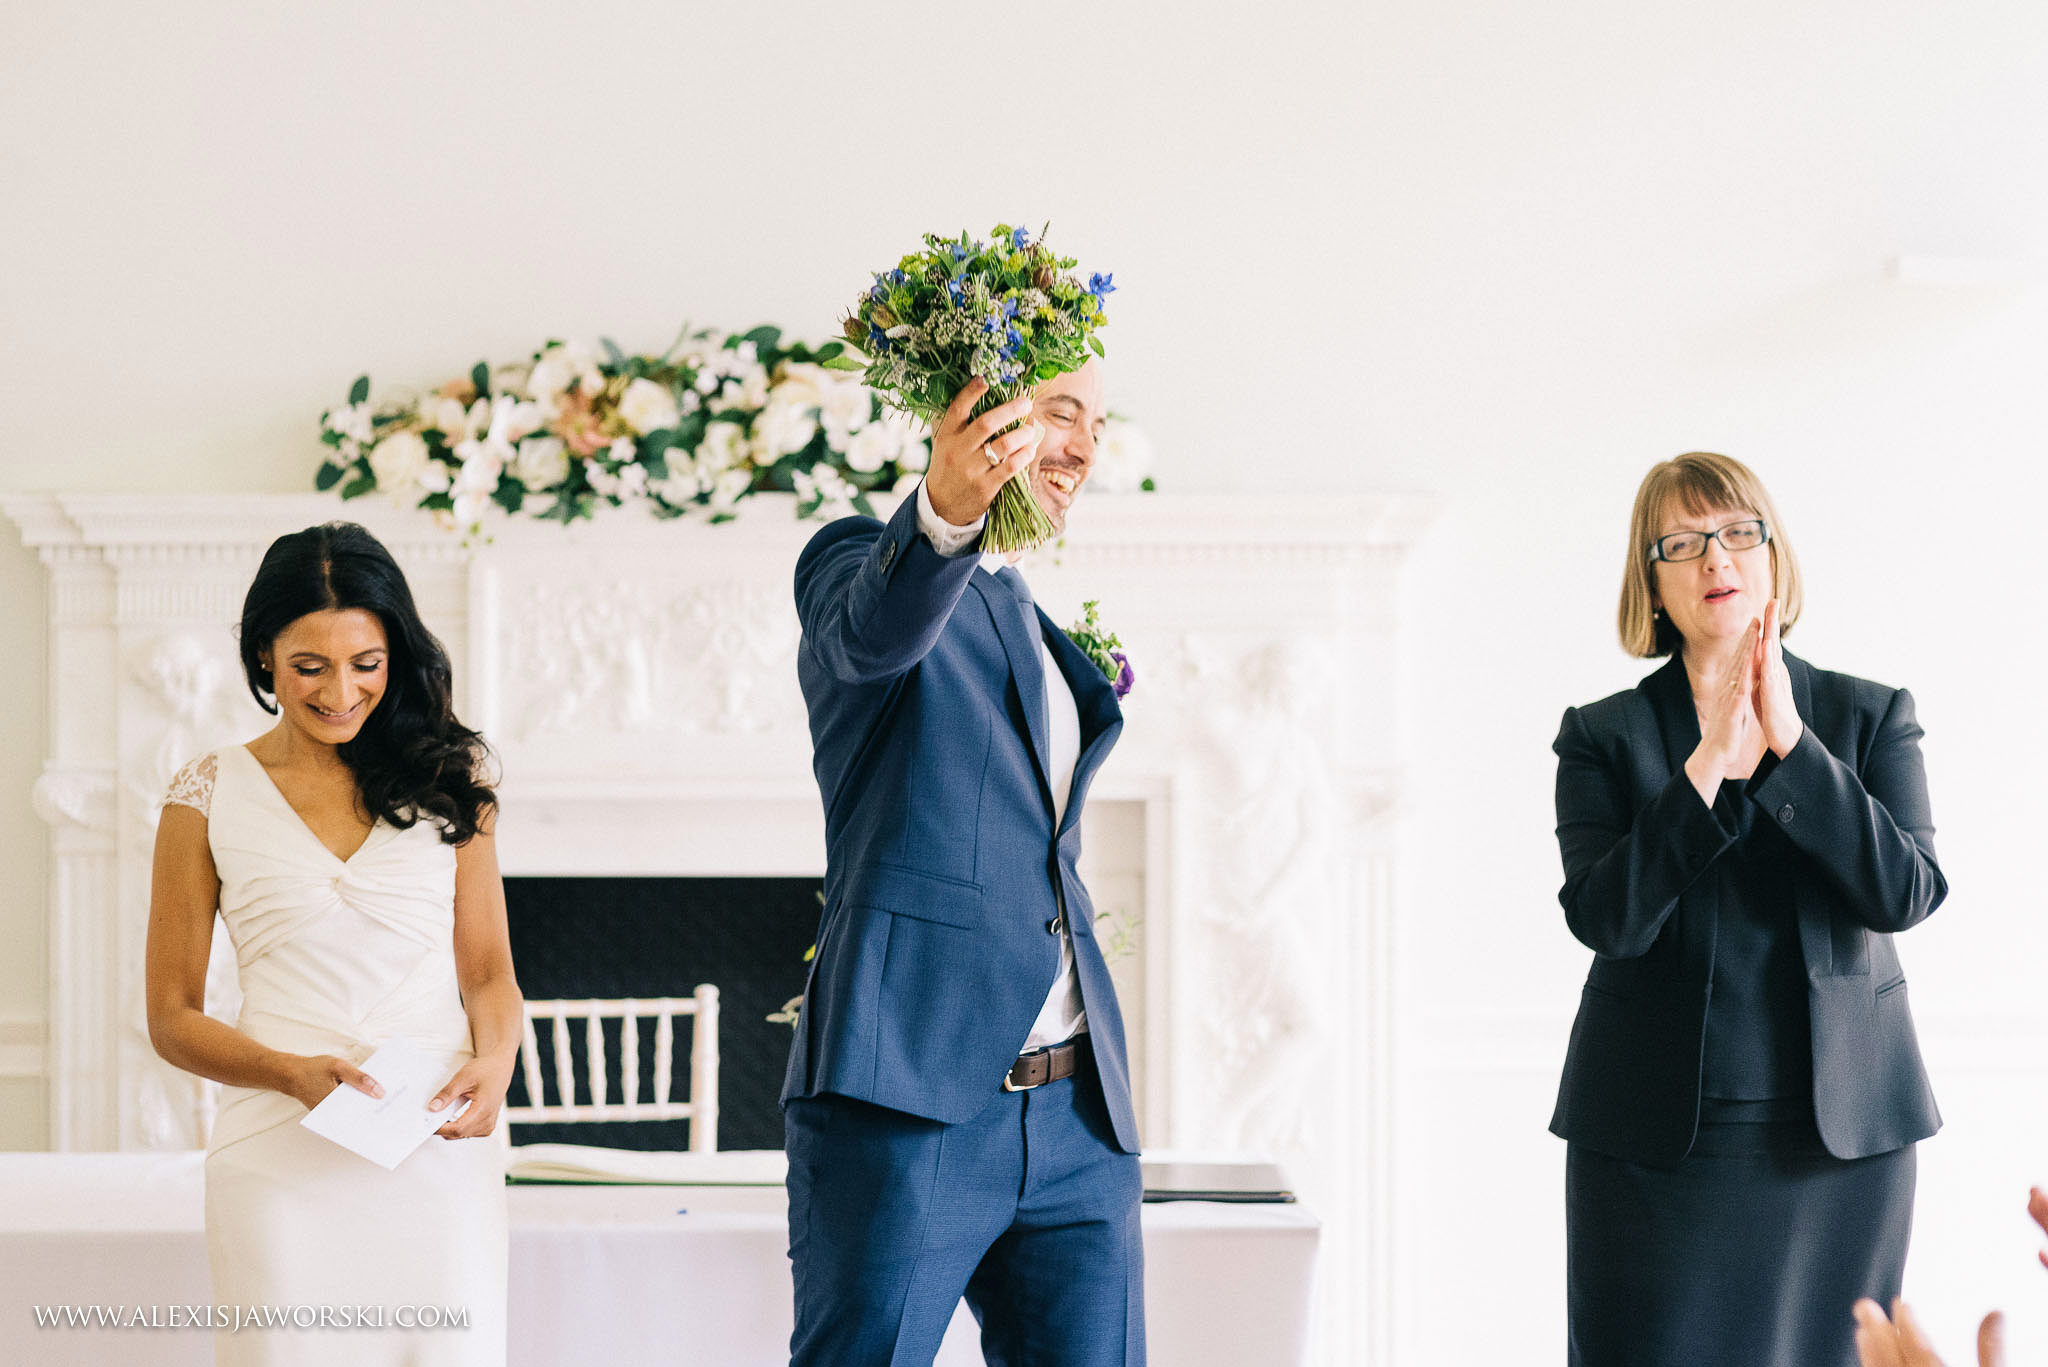 Groom punching the air with bouquet